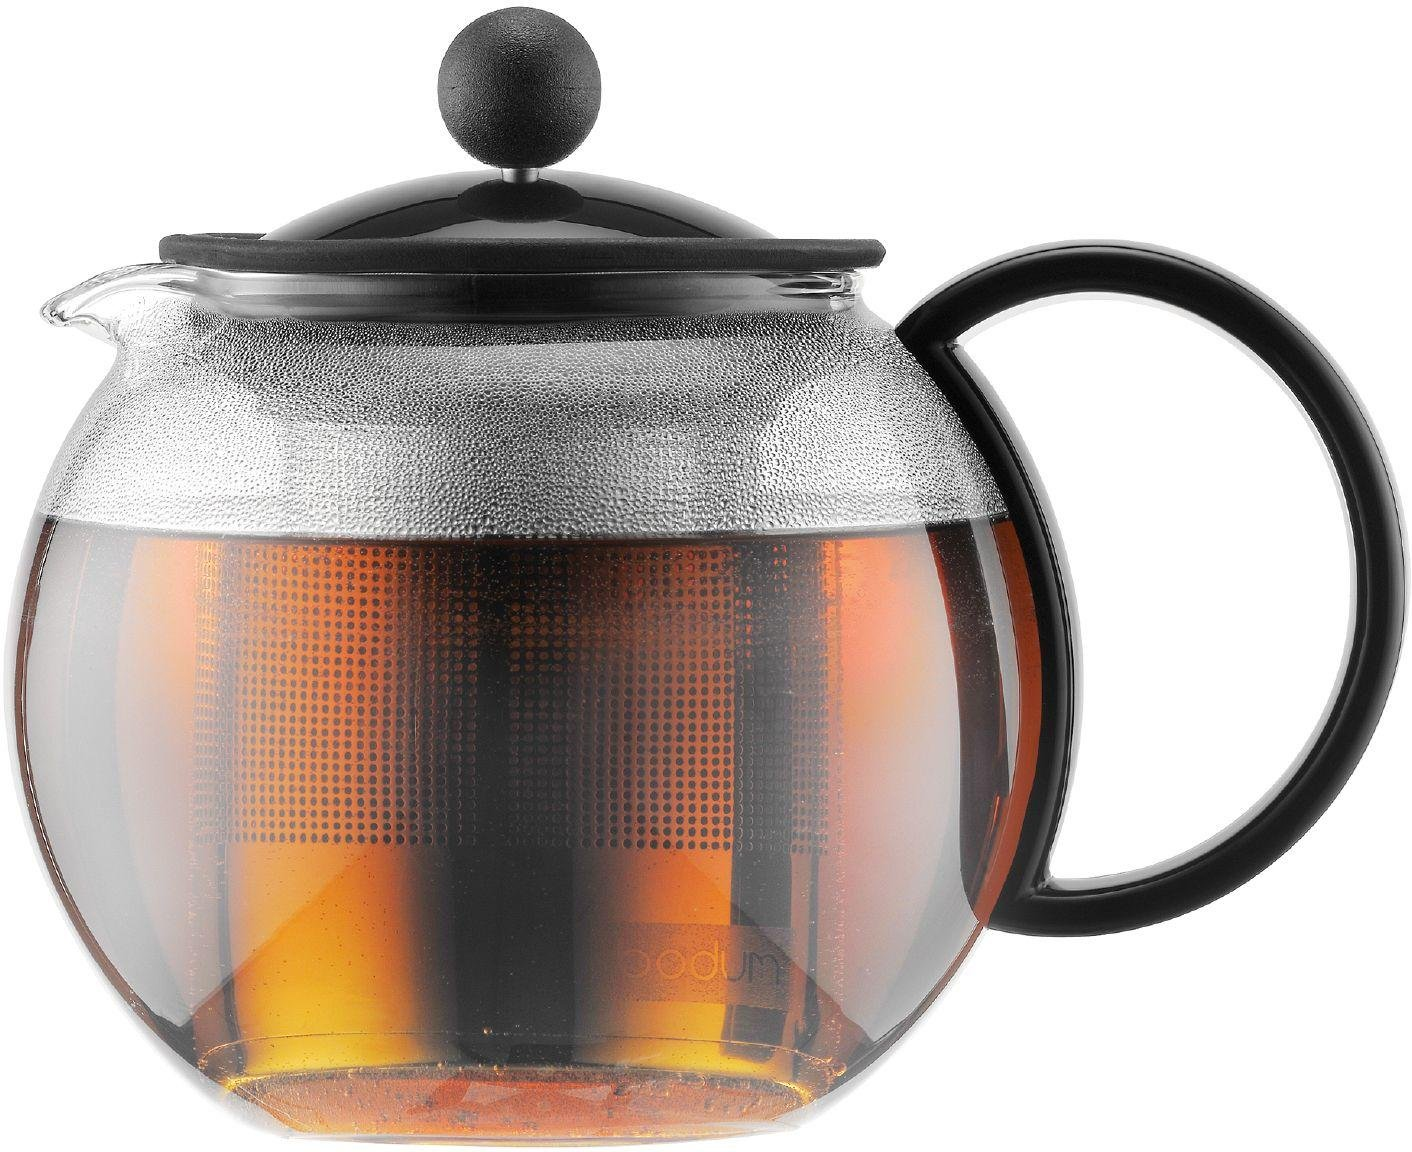 Image of Bodum - Assam Tea Press with Filter - Black